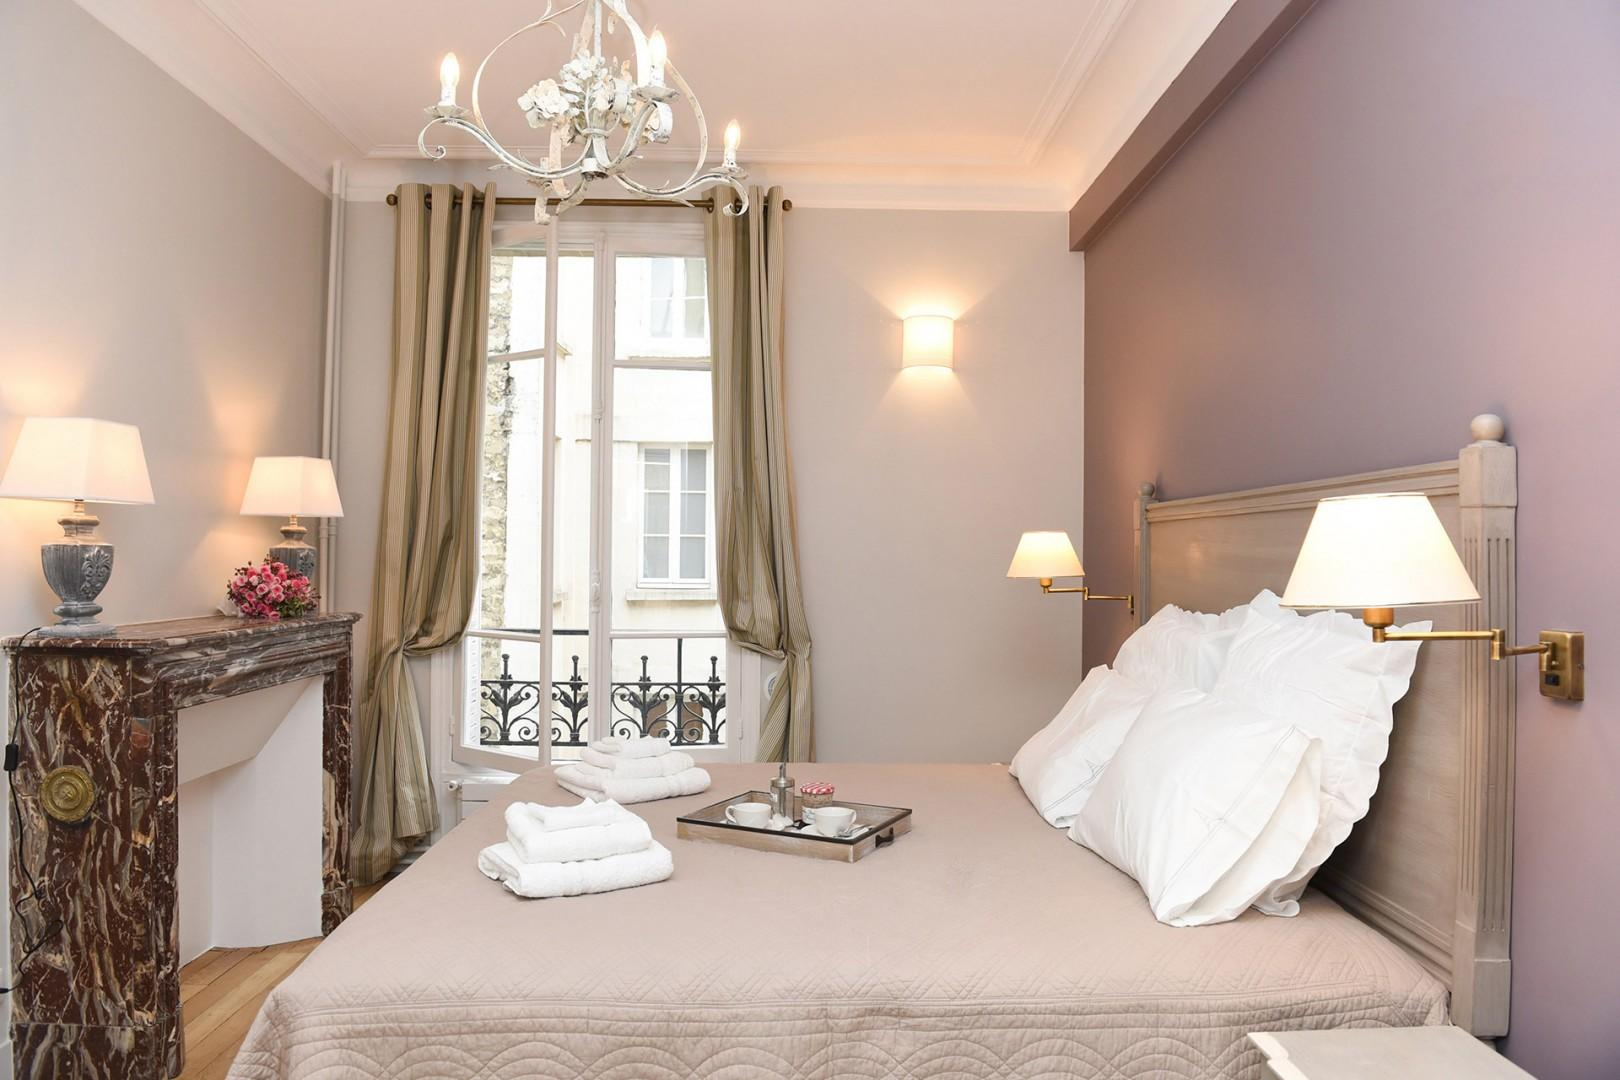 Make yourself at home in the beautiful bedroom 1 with a luxurious bed.